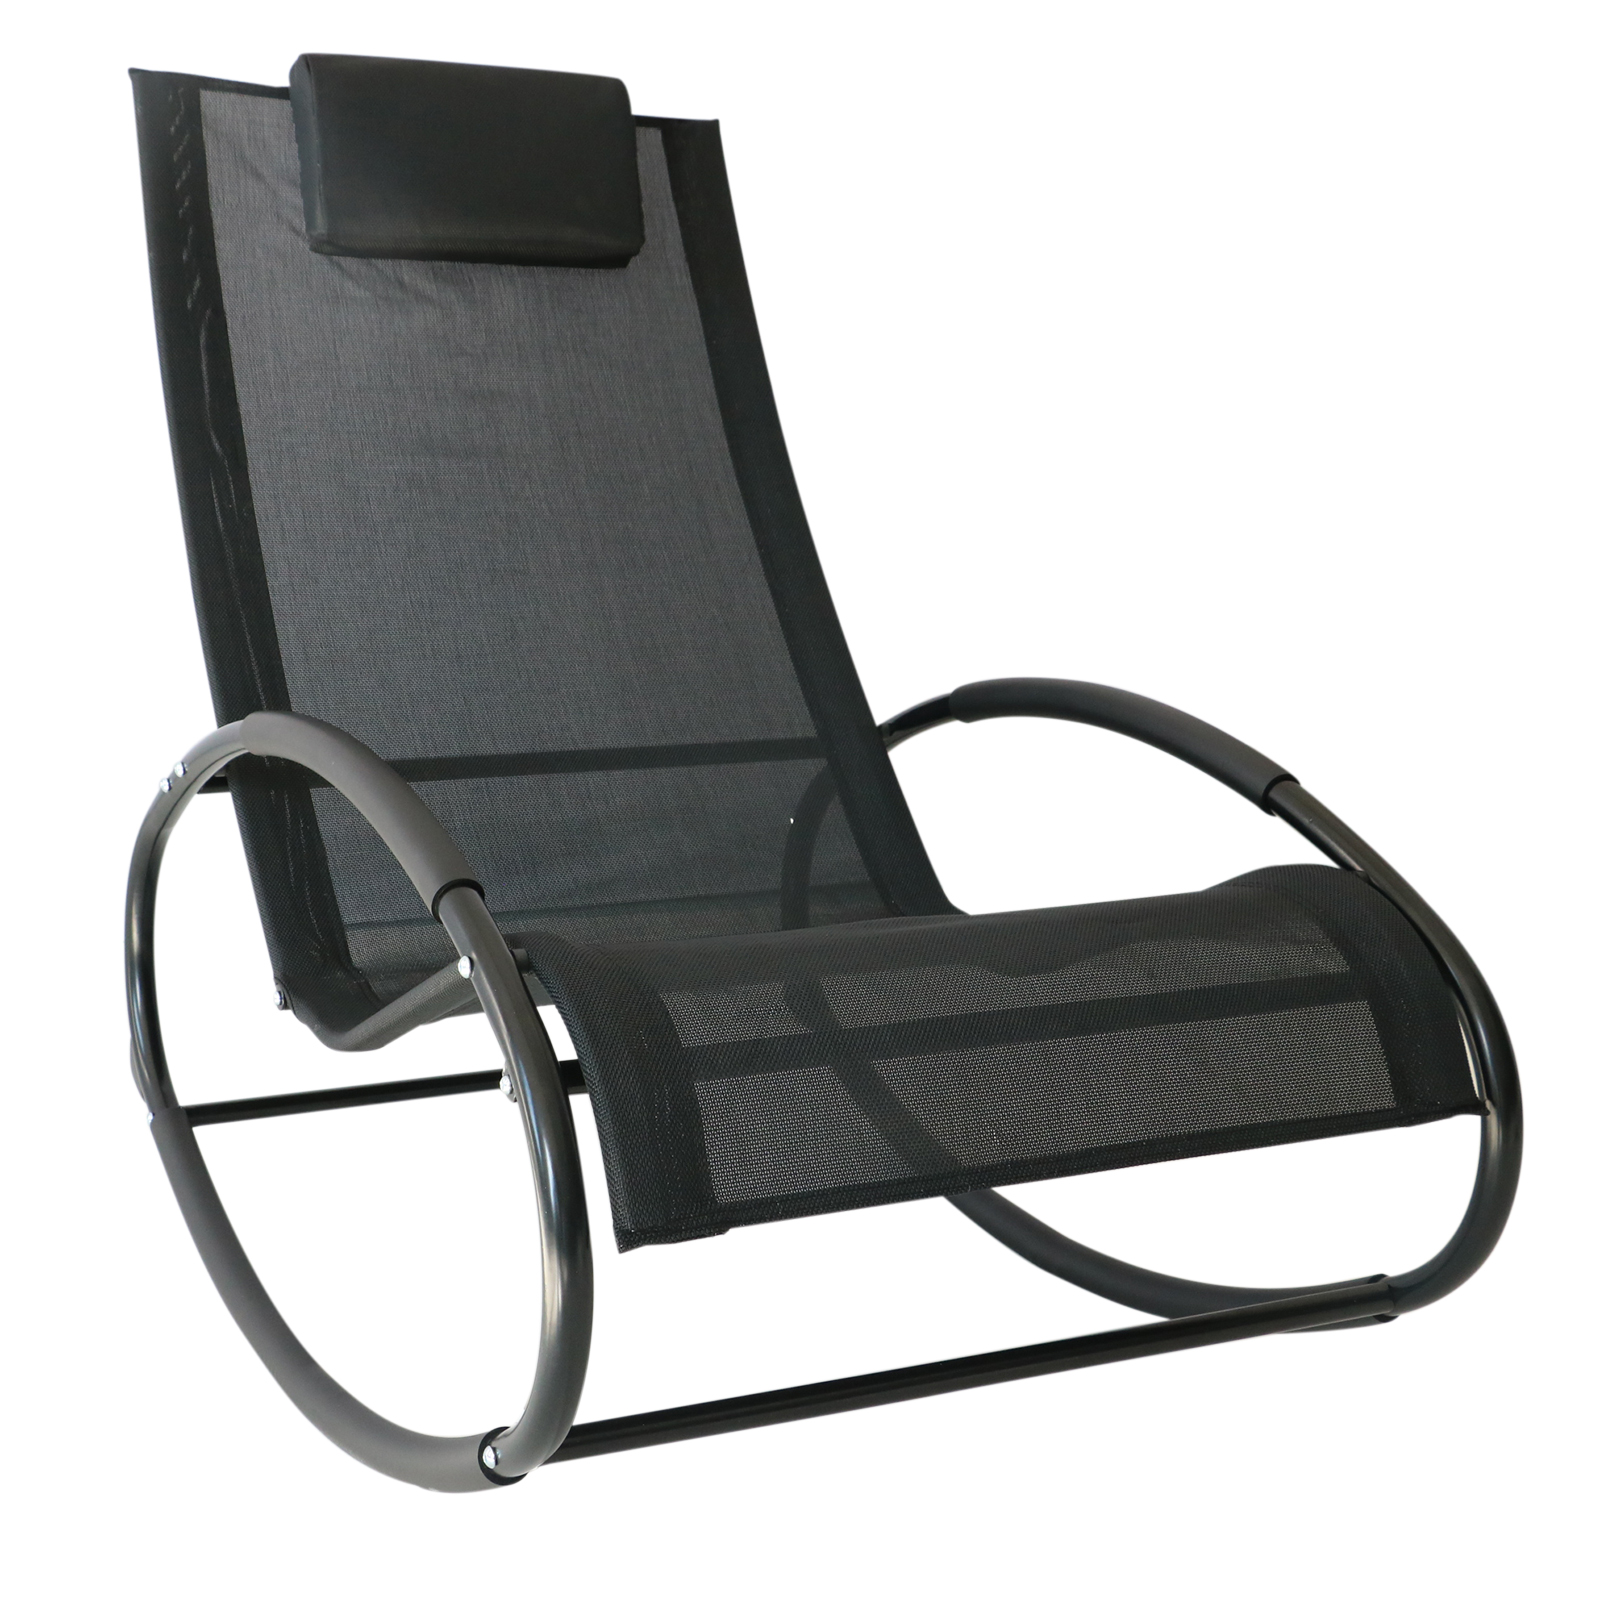 Outsunny Orbital Zero Gravity Chaise Patio Rocking Lounge